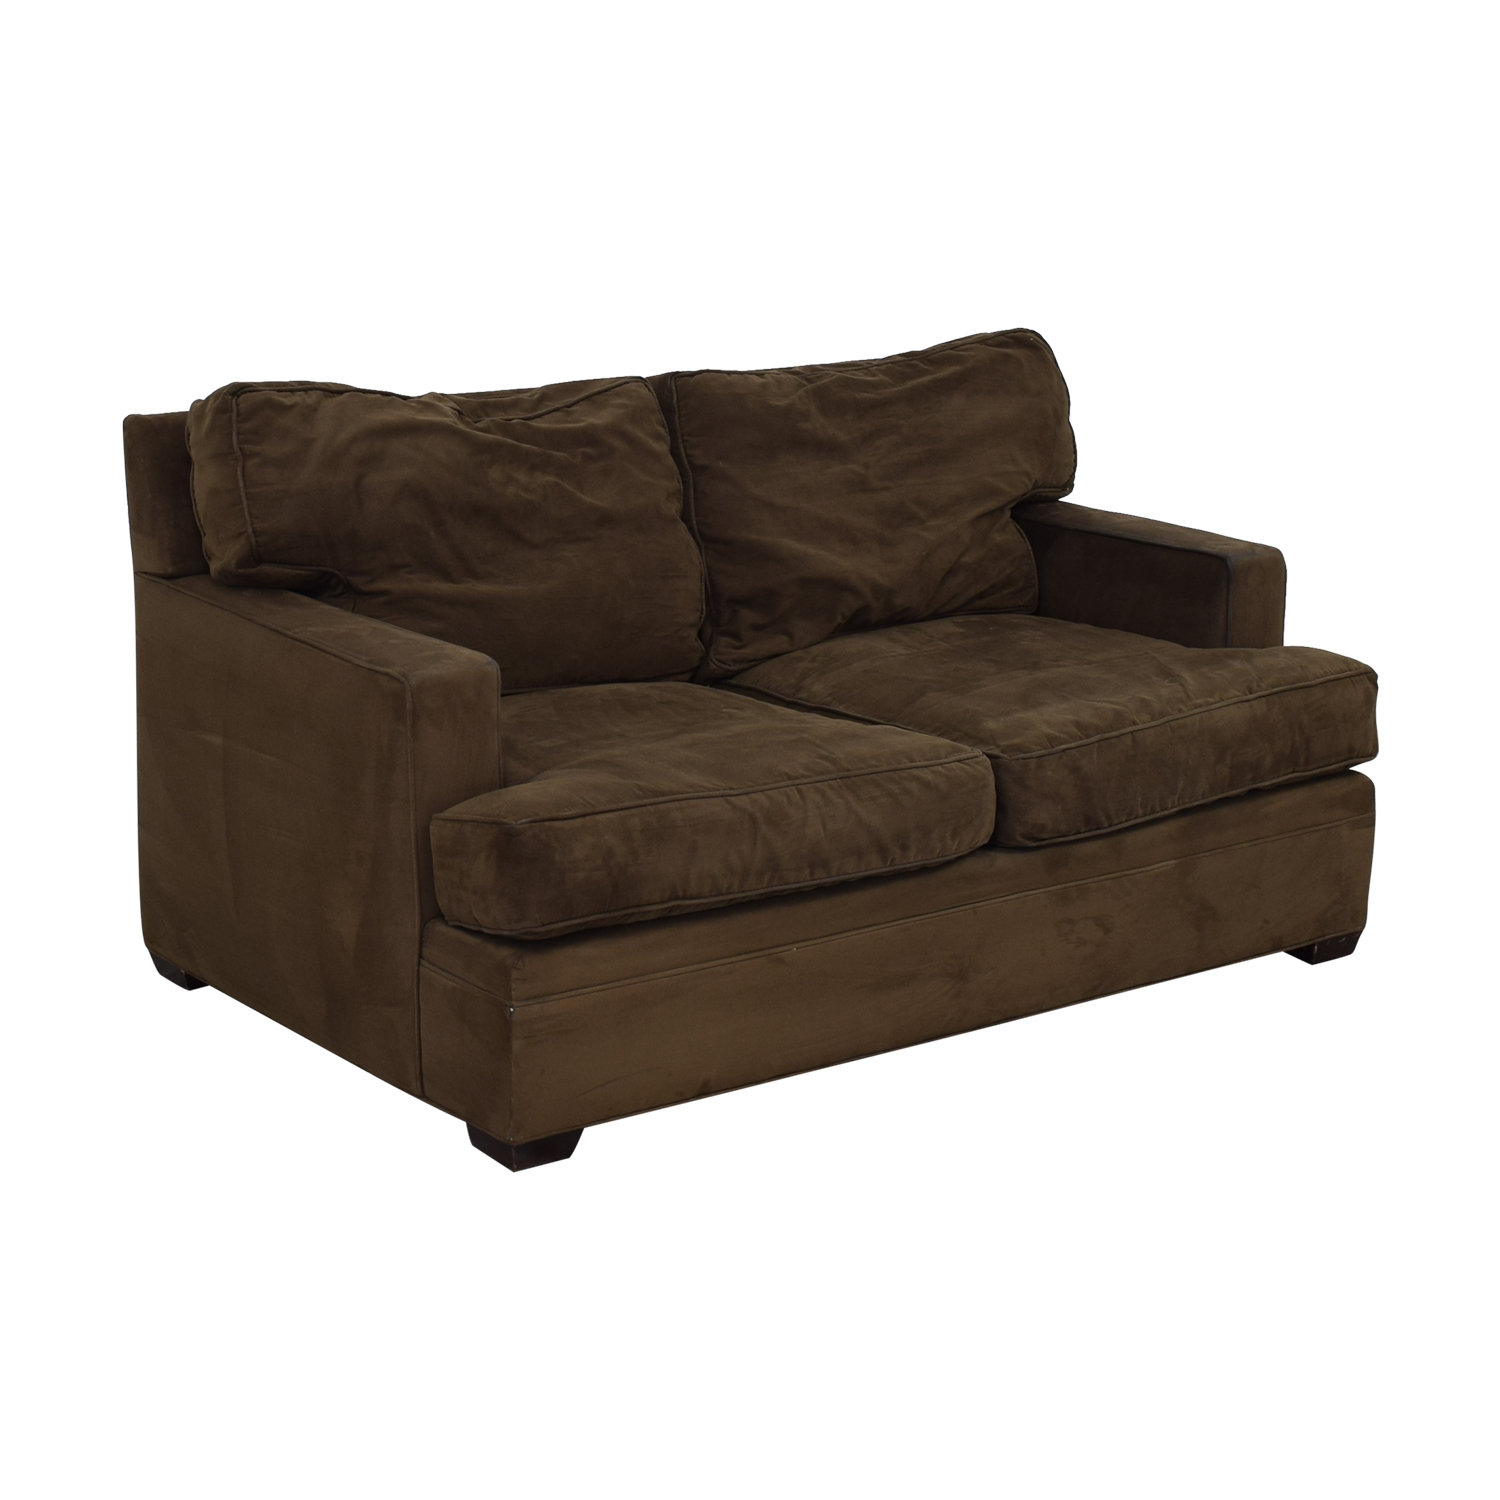 Crate & Barrel Crate & Barrel Brown Suede Loveseat